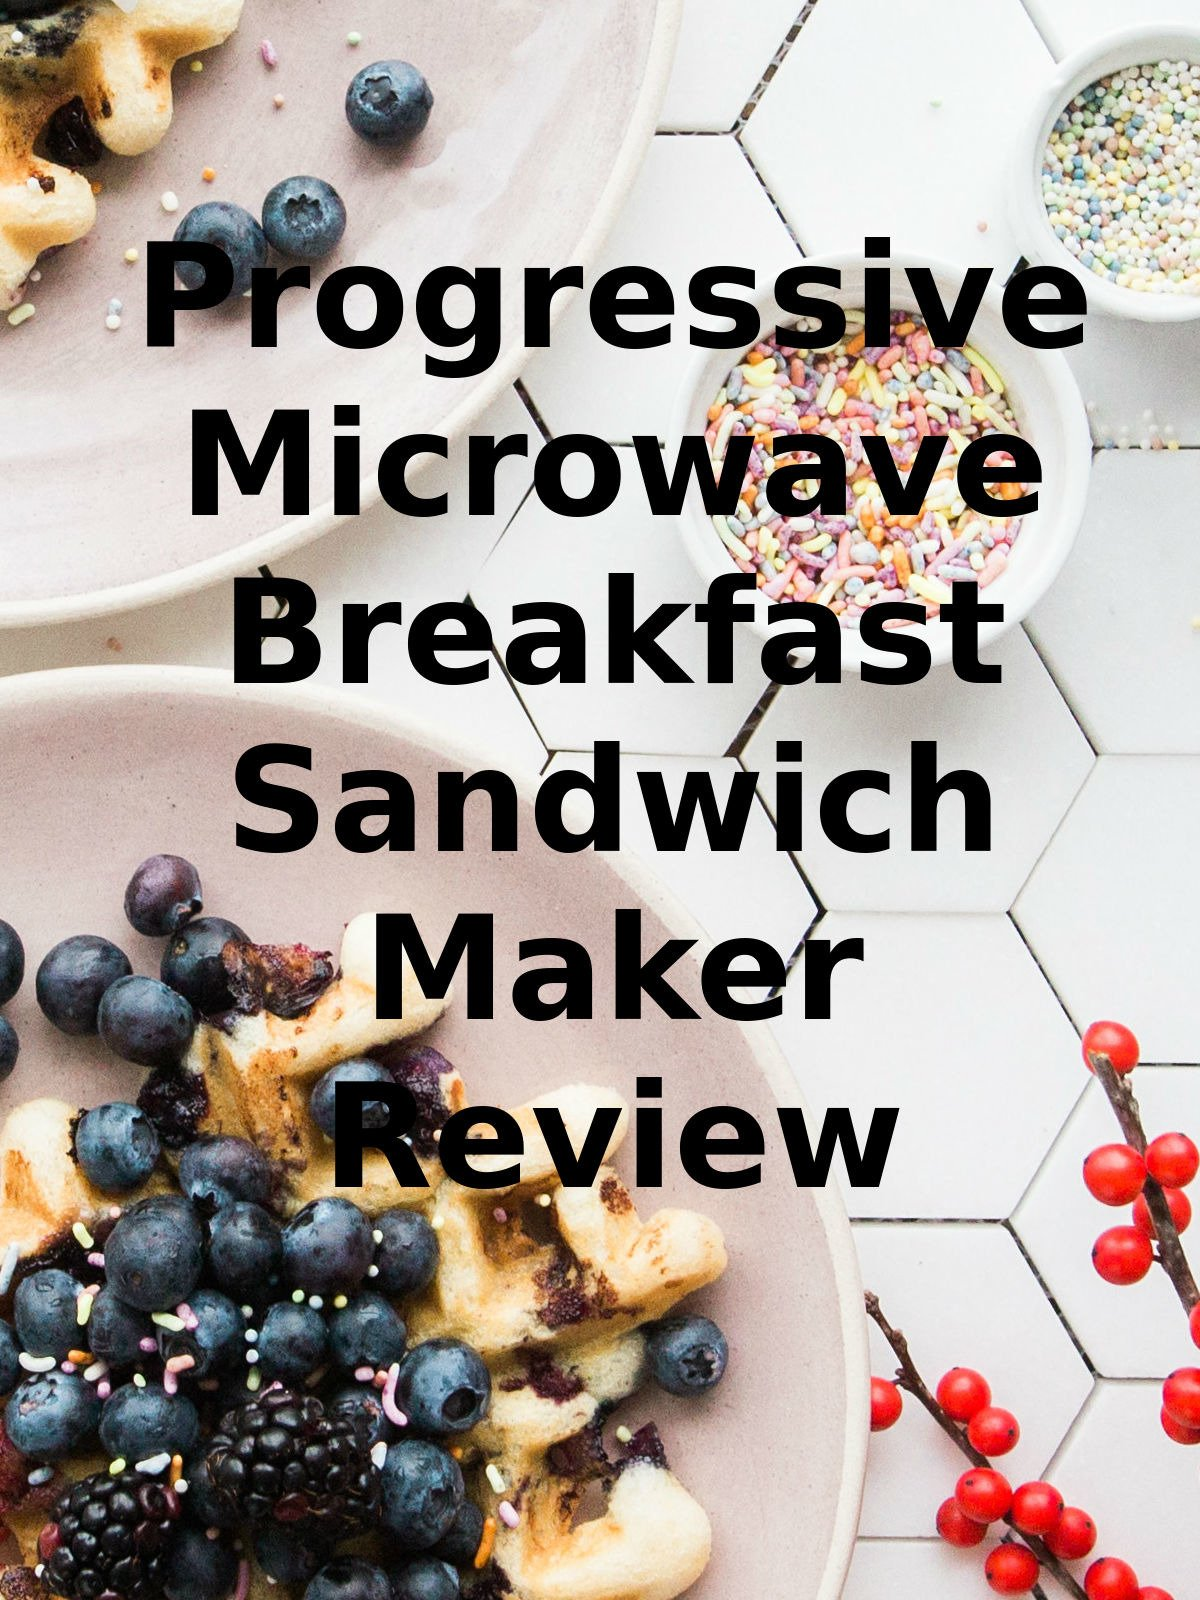 Review: Progressive Microwave Breakfast Sandwich Maker Review on Amazon Prime Video UK